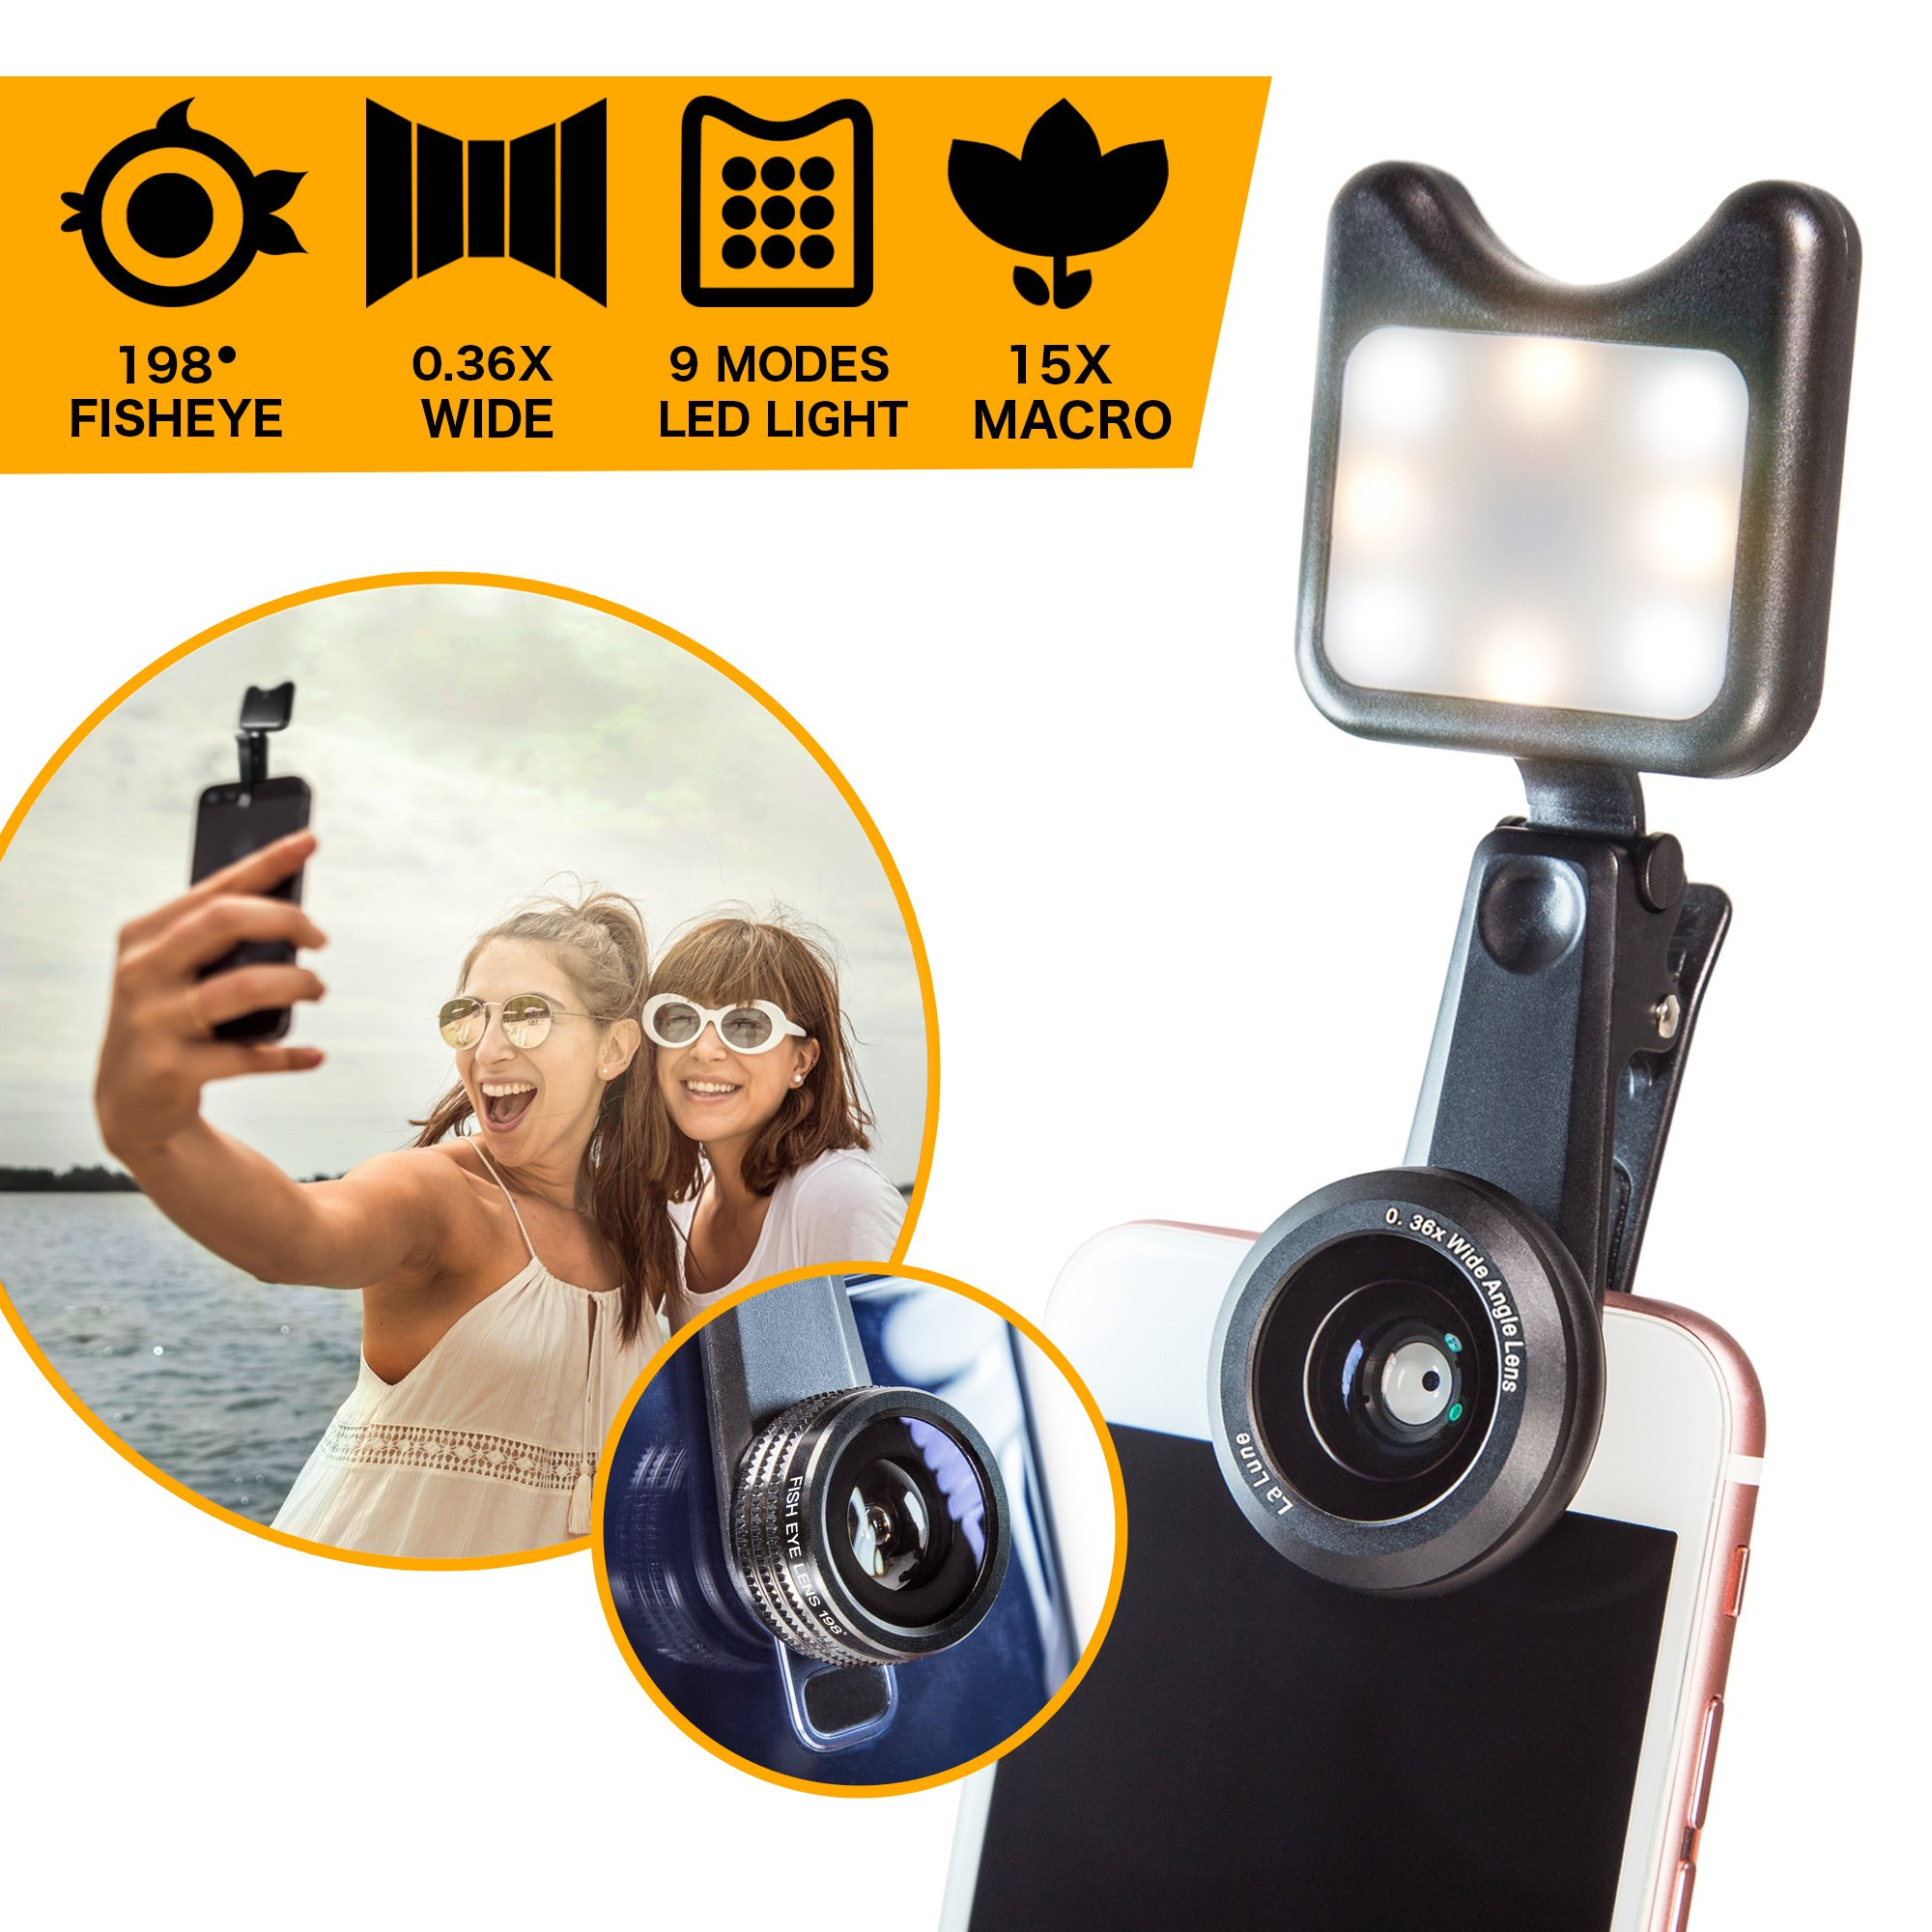 Cell Phone Camera Lens Kit with Clip-On LED Selfie Light - 36x Wide Angle, 15x Macro, 198-degree Fisheye Lens for iPhone, Android Smartphones and Tablets by La Lune